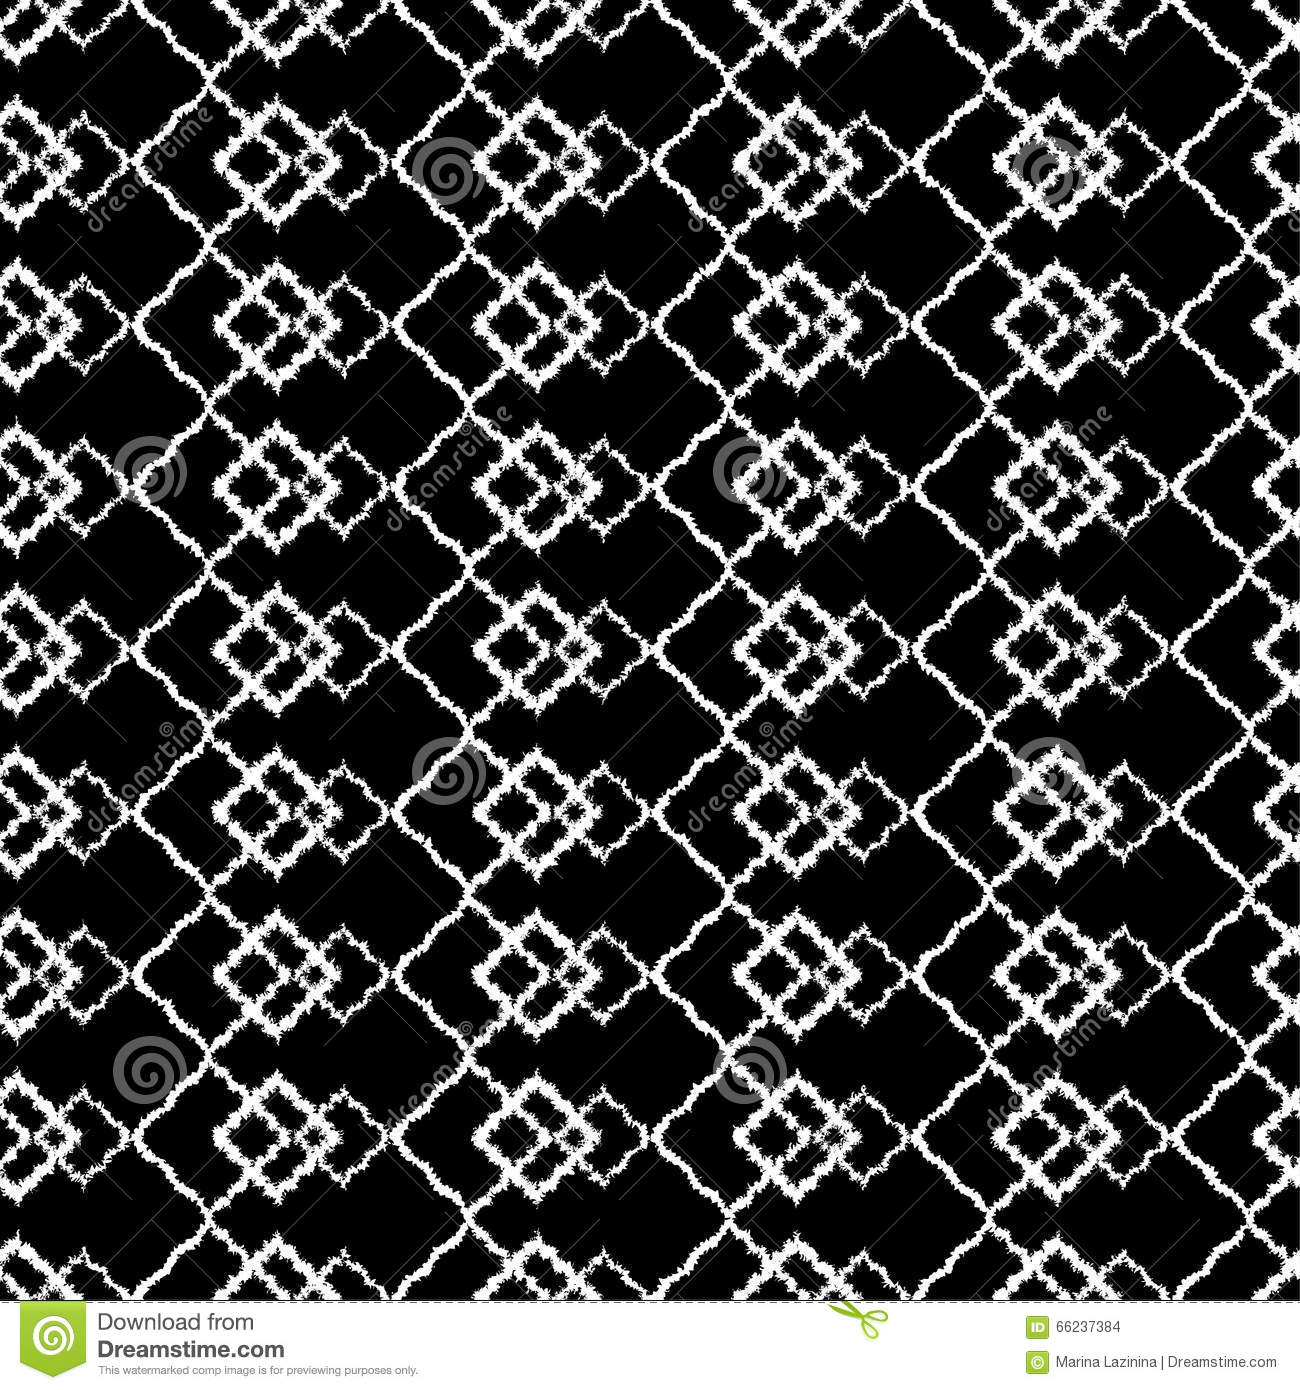 how to make a repeating background